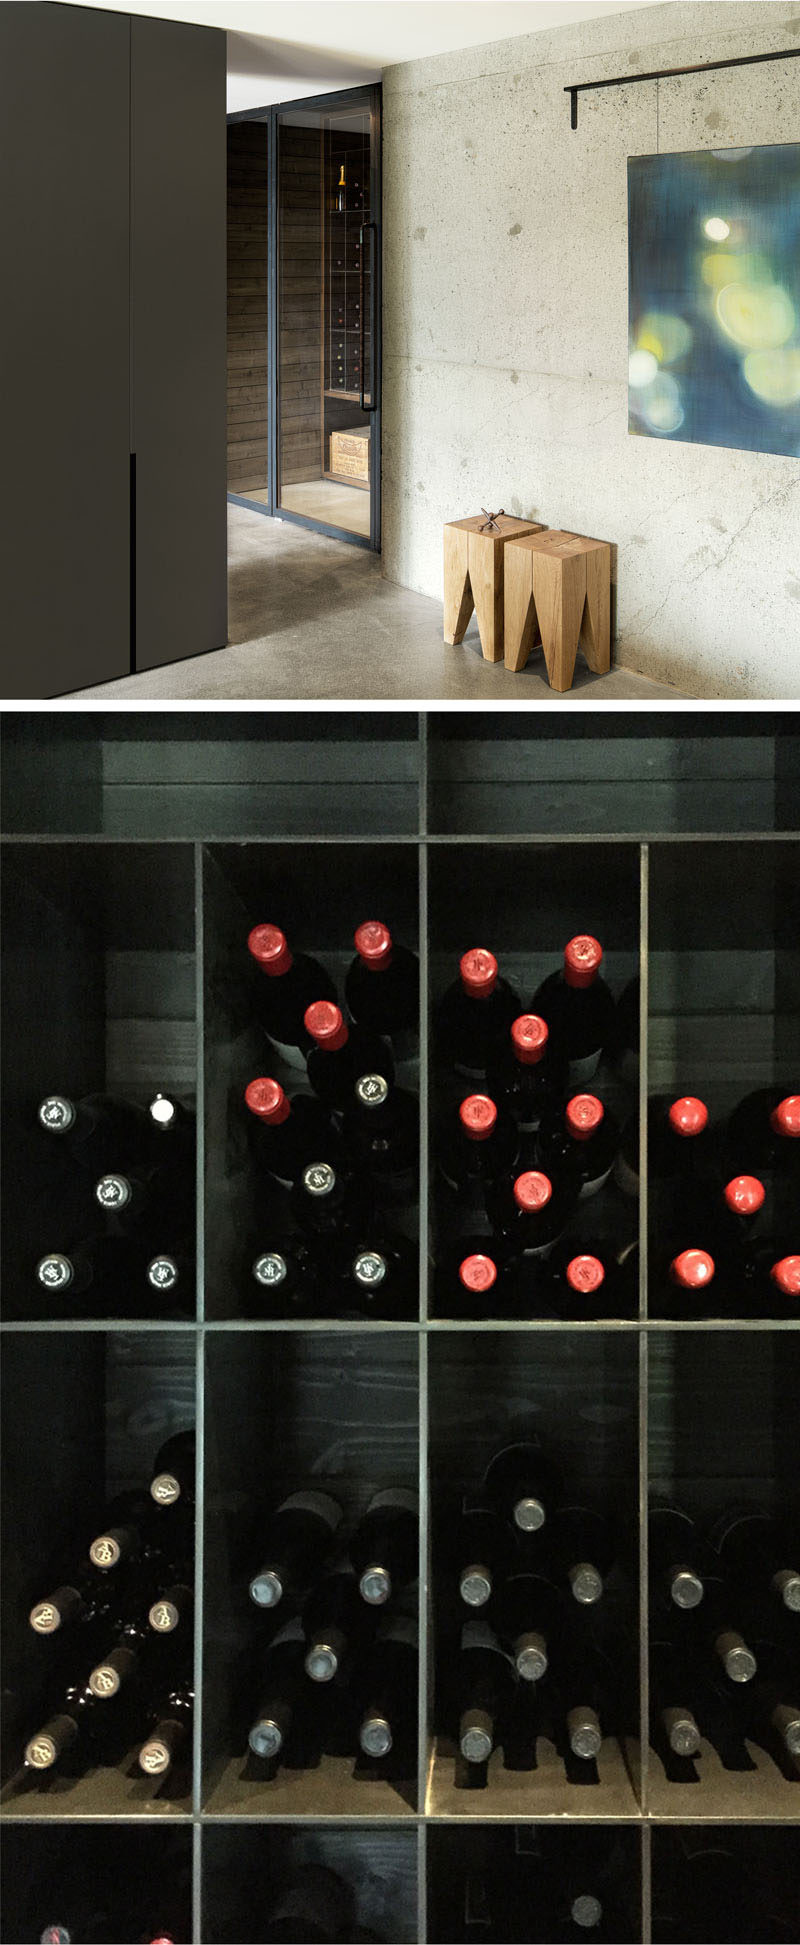 On the lower level of this renovated modern home, an existing foundation wall was exposed in the hall that leads to a small wine cellar off the workshop. #ModernHouse #WineRoom #WineStorage #WineCellar